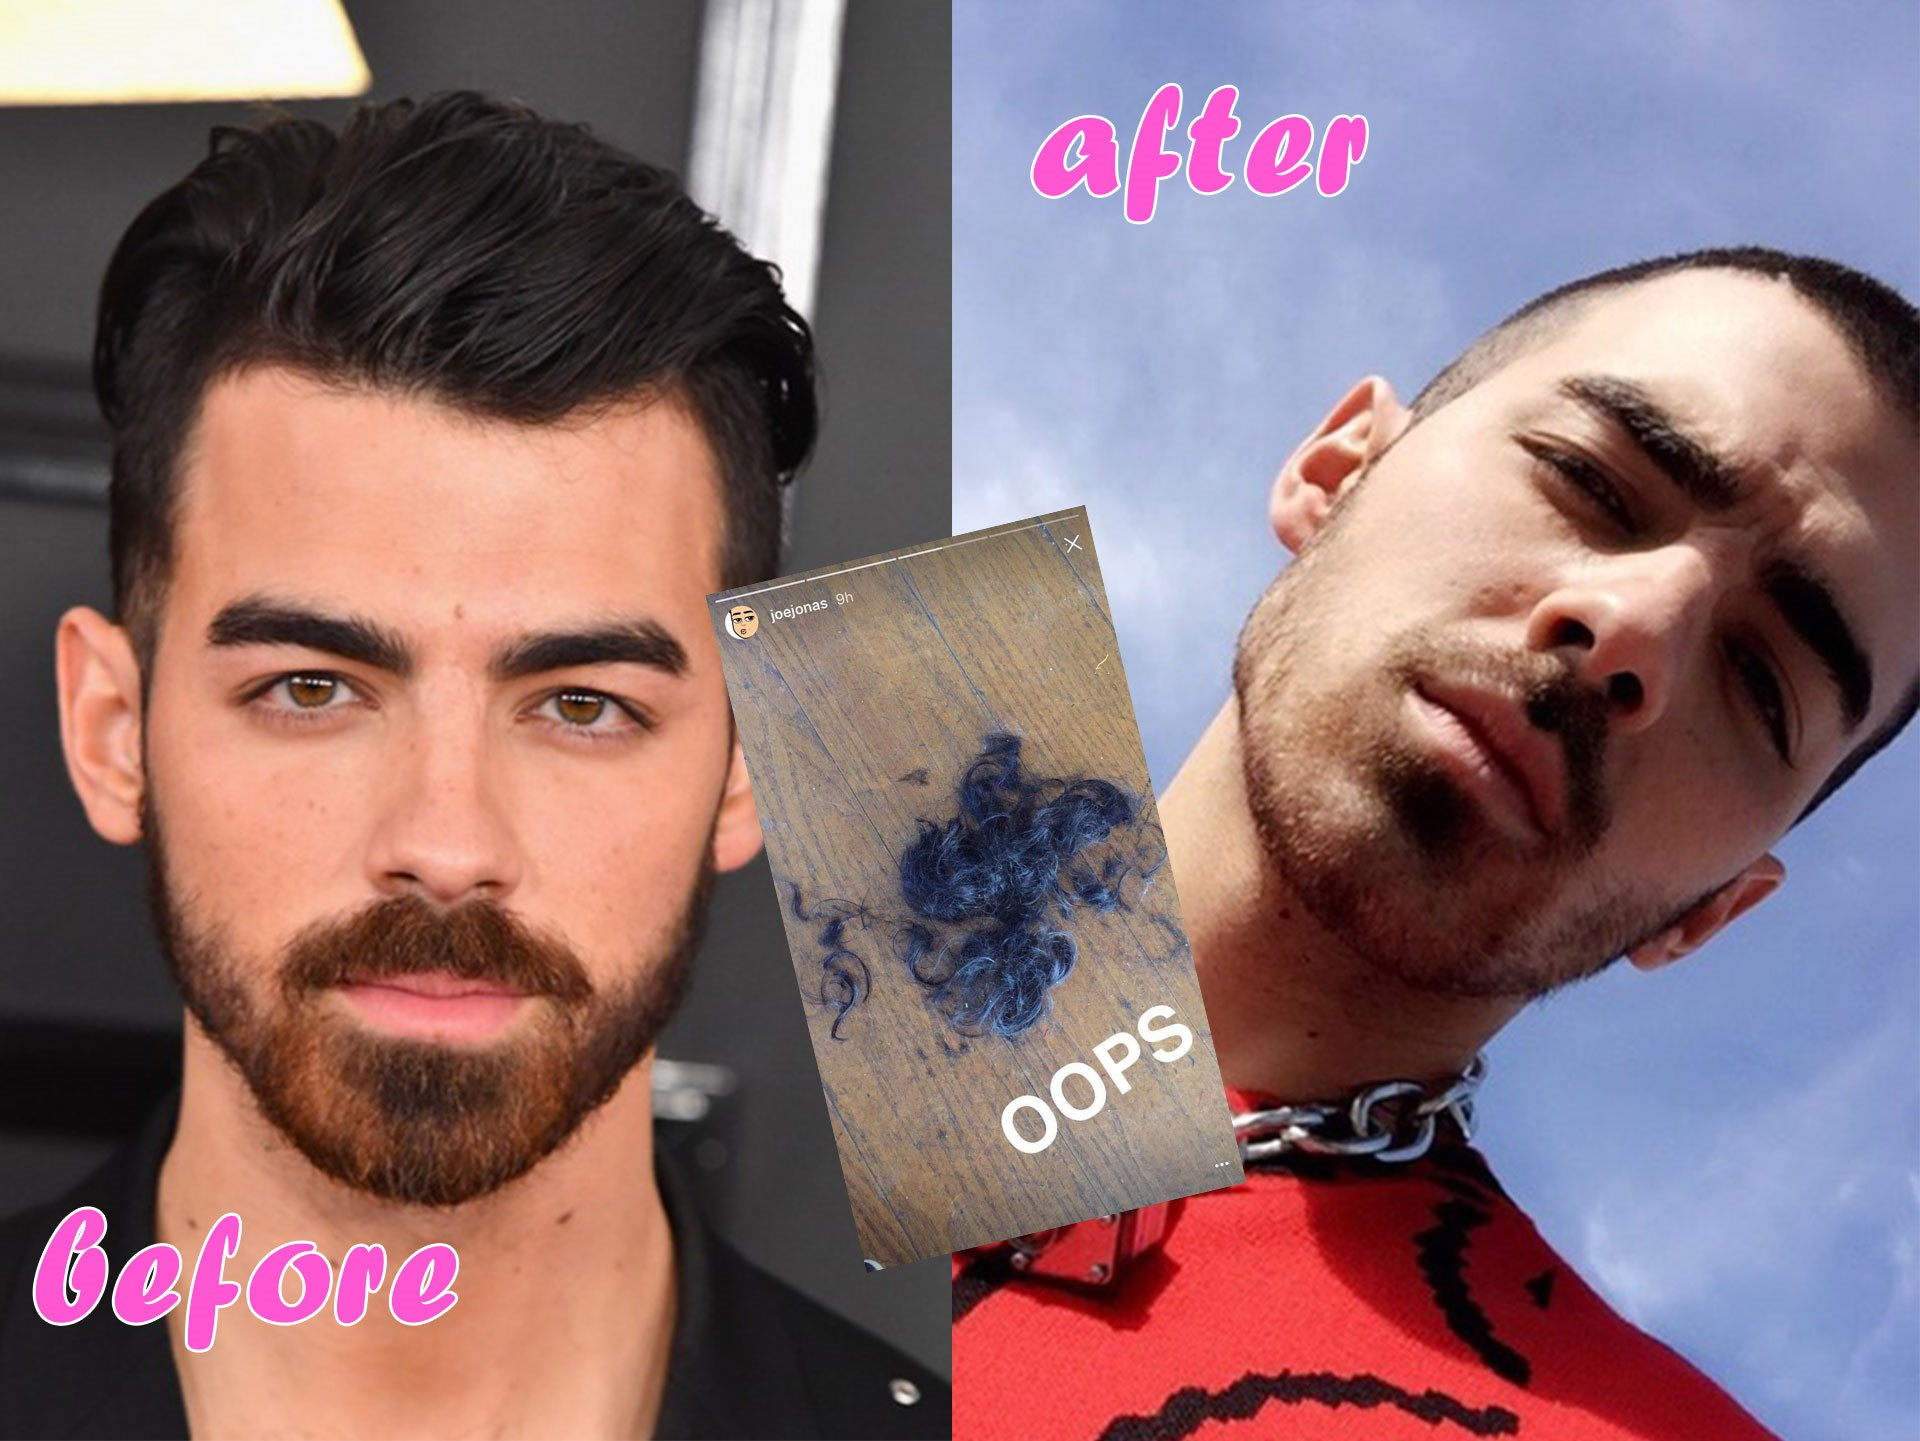 Joe Jonas has shaved off all his head! The star let fans know in a cheeky Snapchat showing all his chopped off locks on the floor. Honestly, we're diggin' this look on Joe!